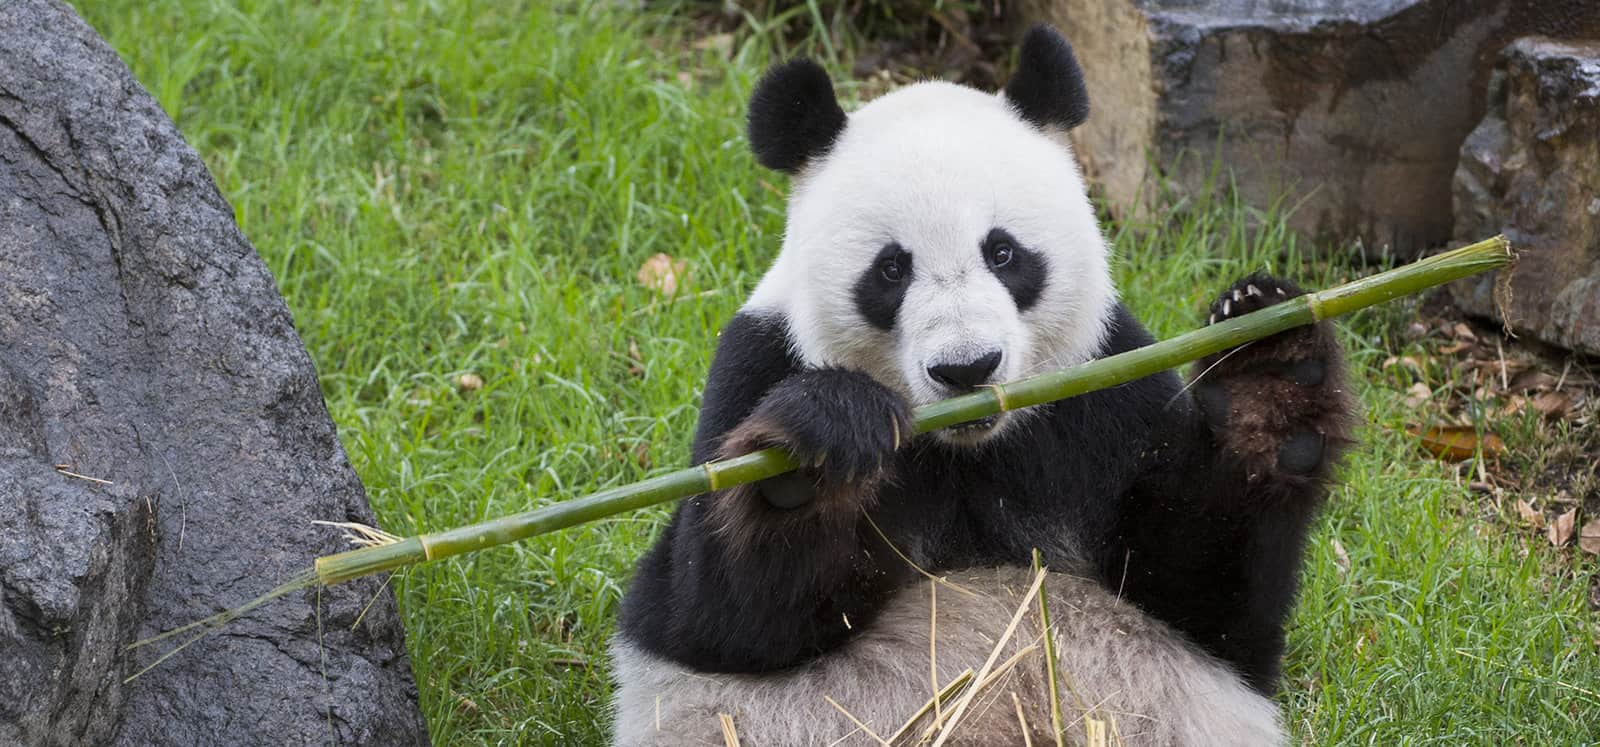 Giant Panda chewing on bamboo shoot at Adelaide Zoo